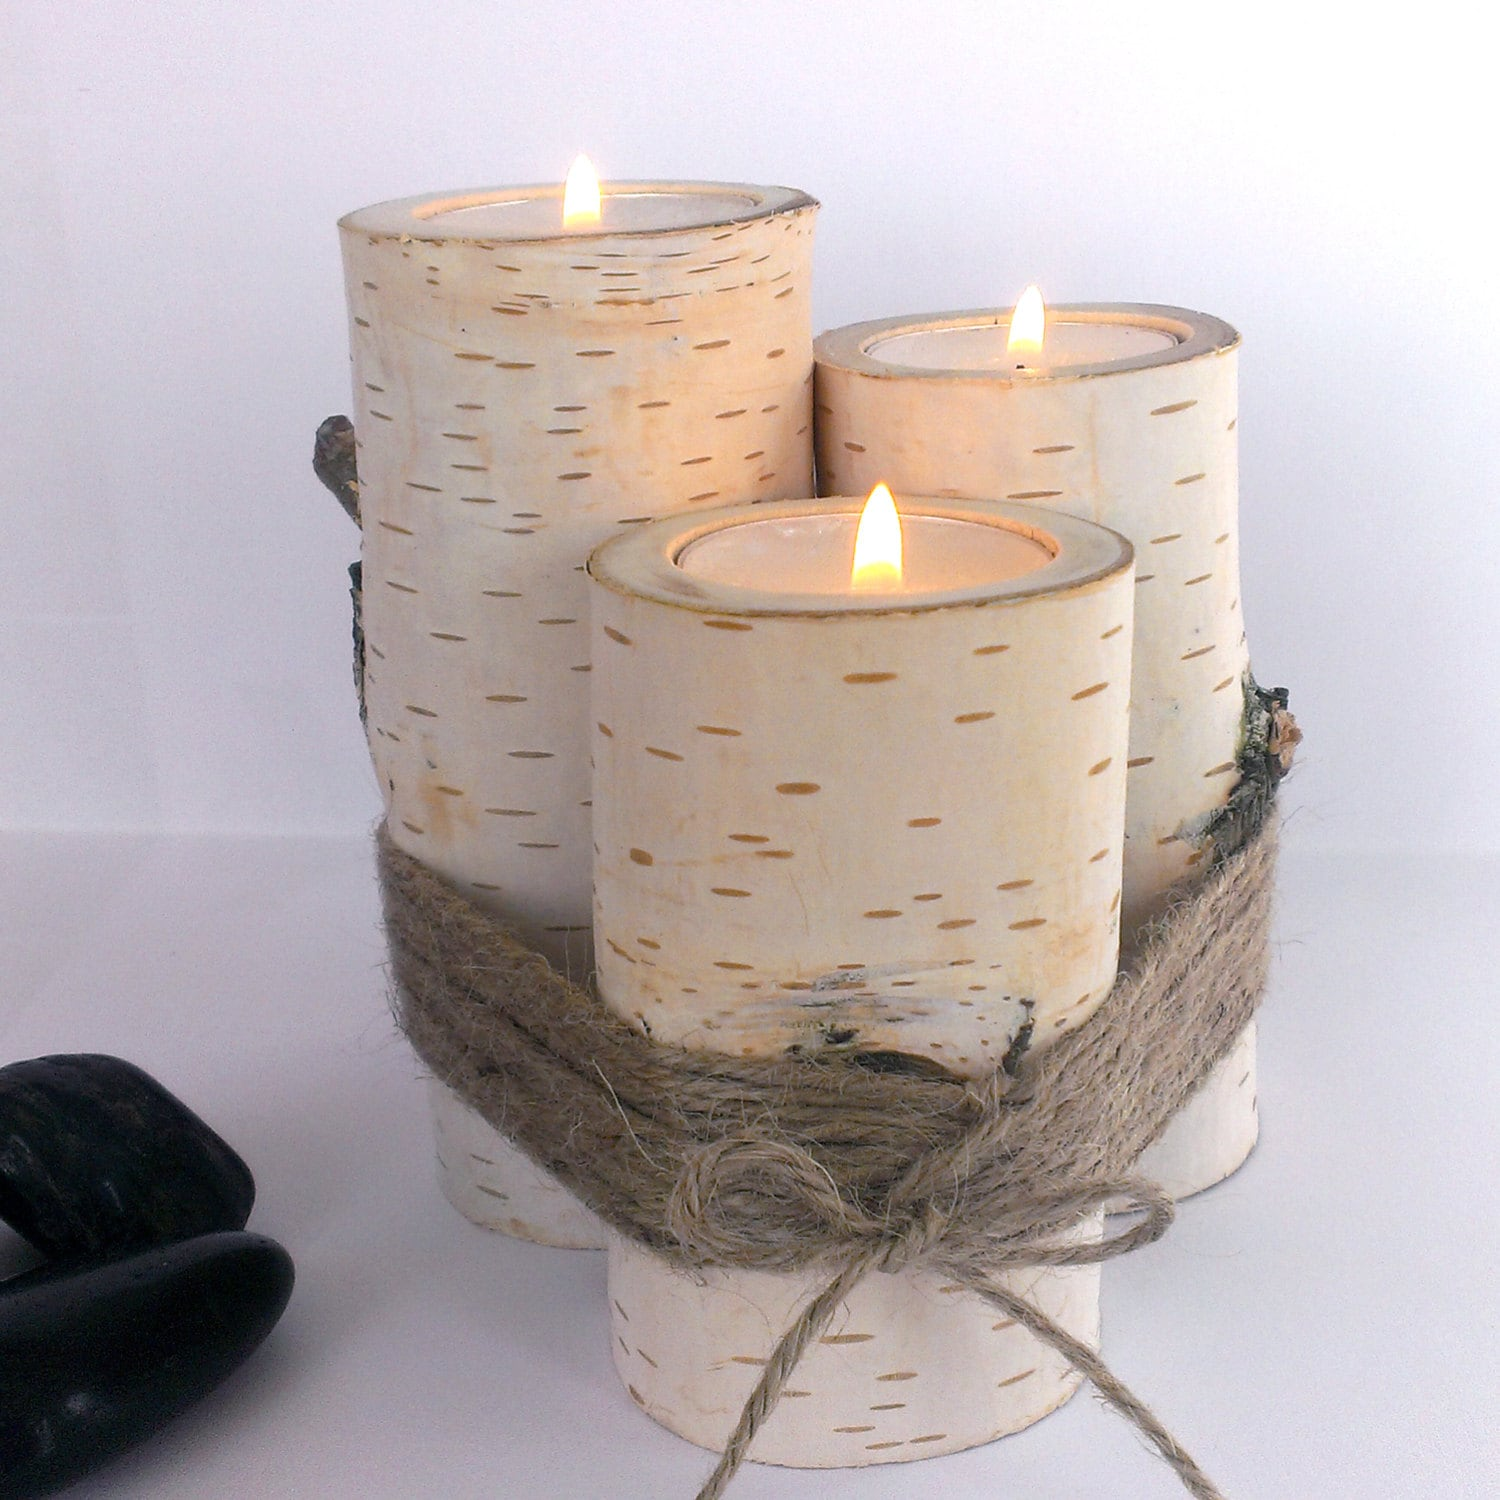 Wooden Candle Holders, Tree Branch Candle Holders, Home Decor, Tea Light Holder, Rustic Centerpiece, Woodland, Candle Holder, Birch Tree Log